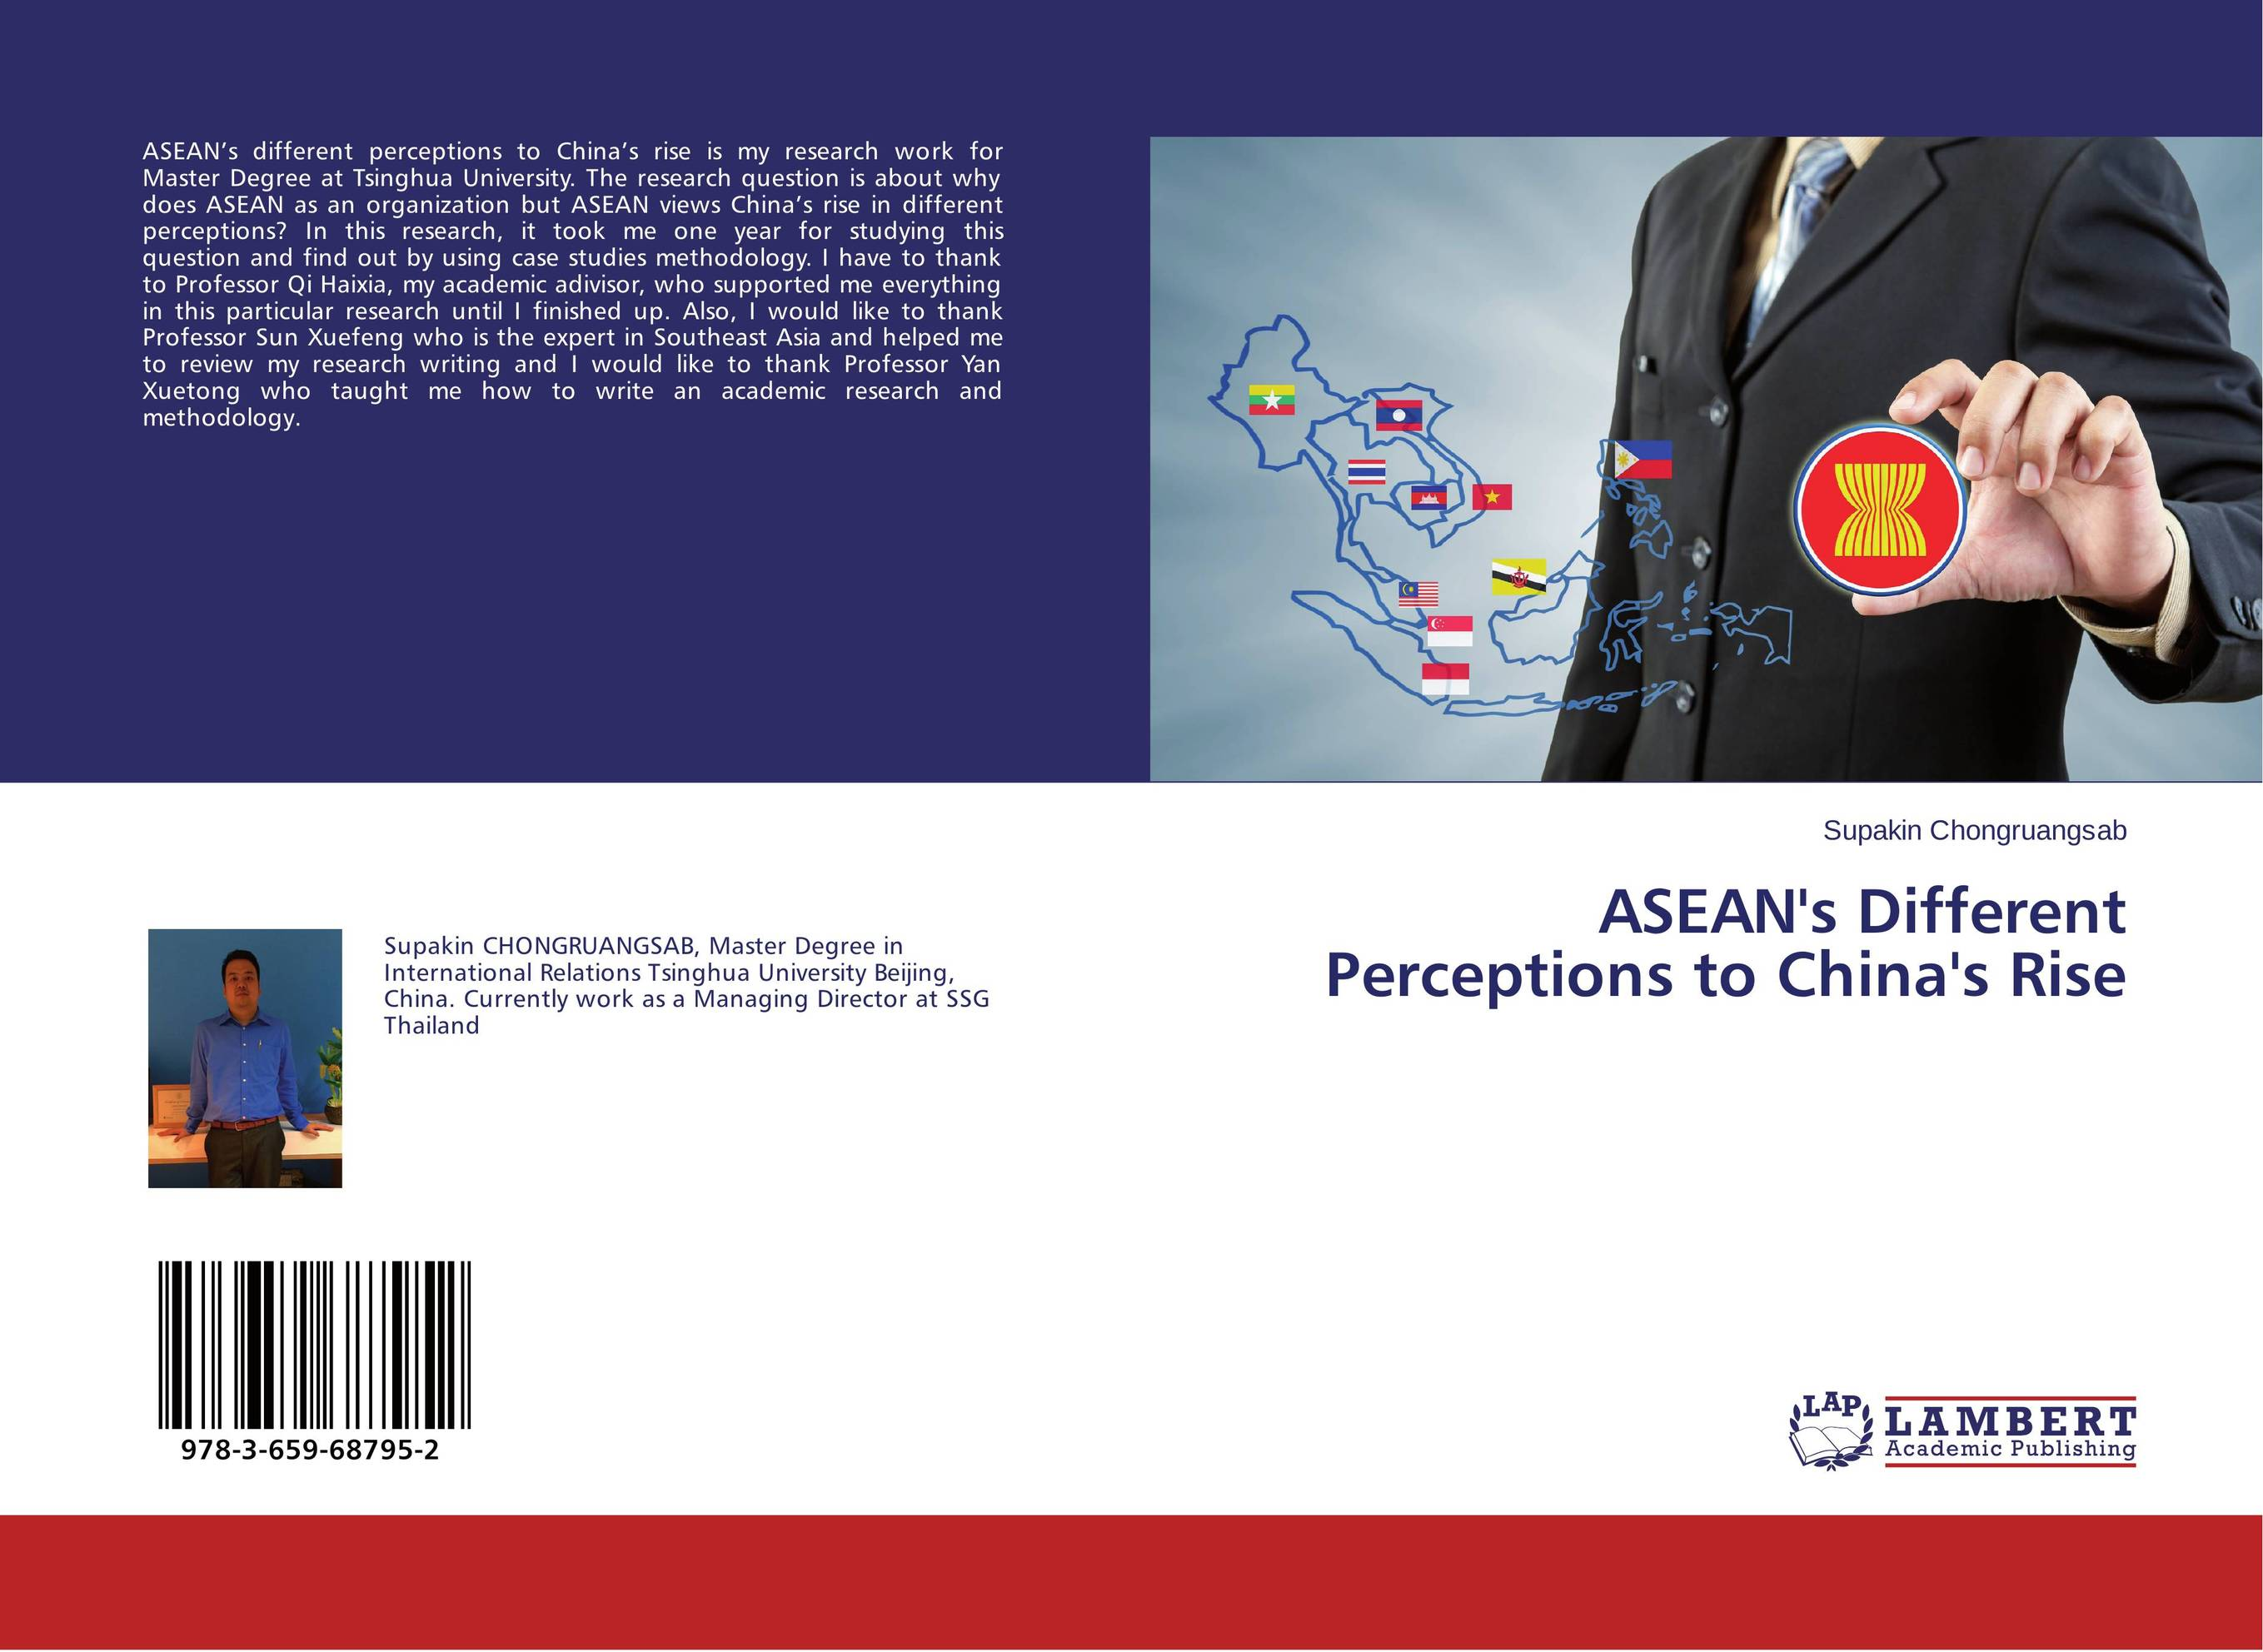 ASEAN's Different Perceptions to China's Rise